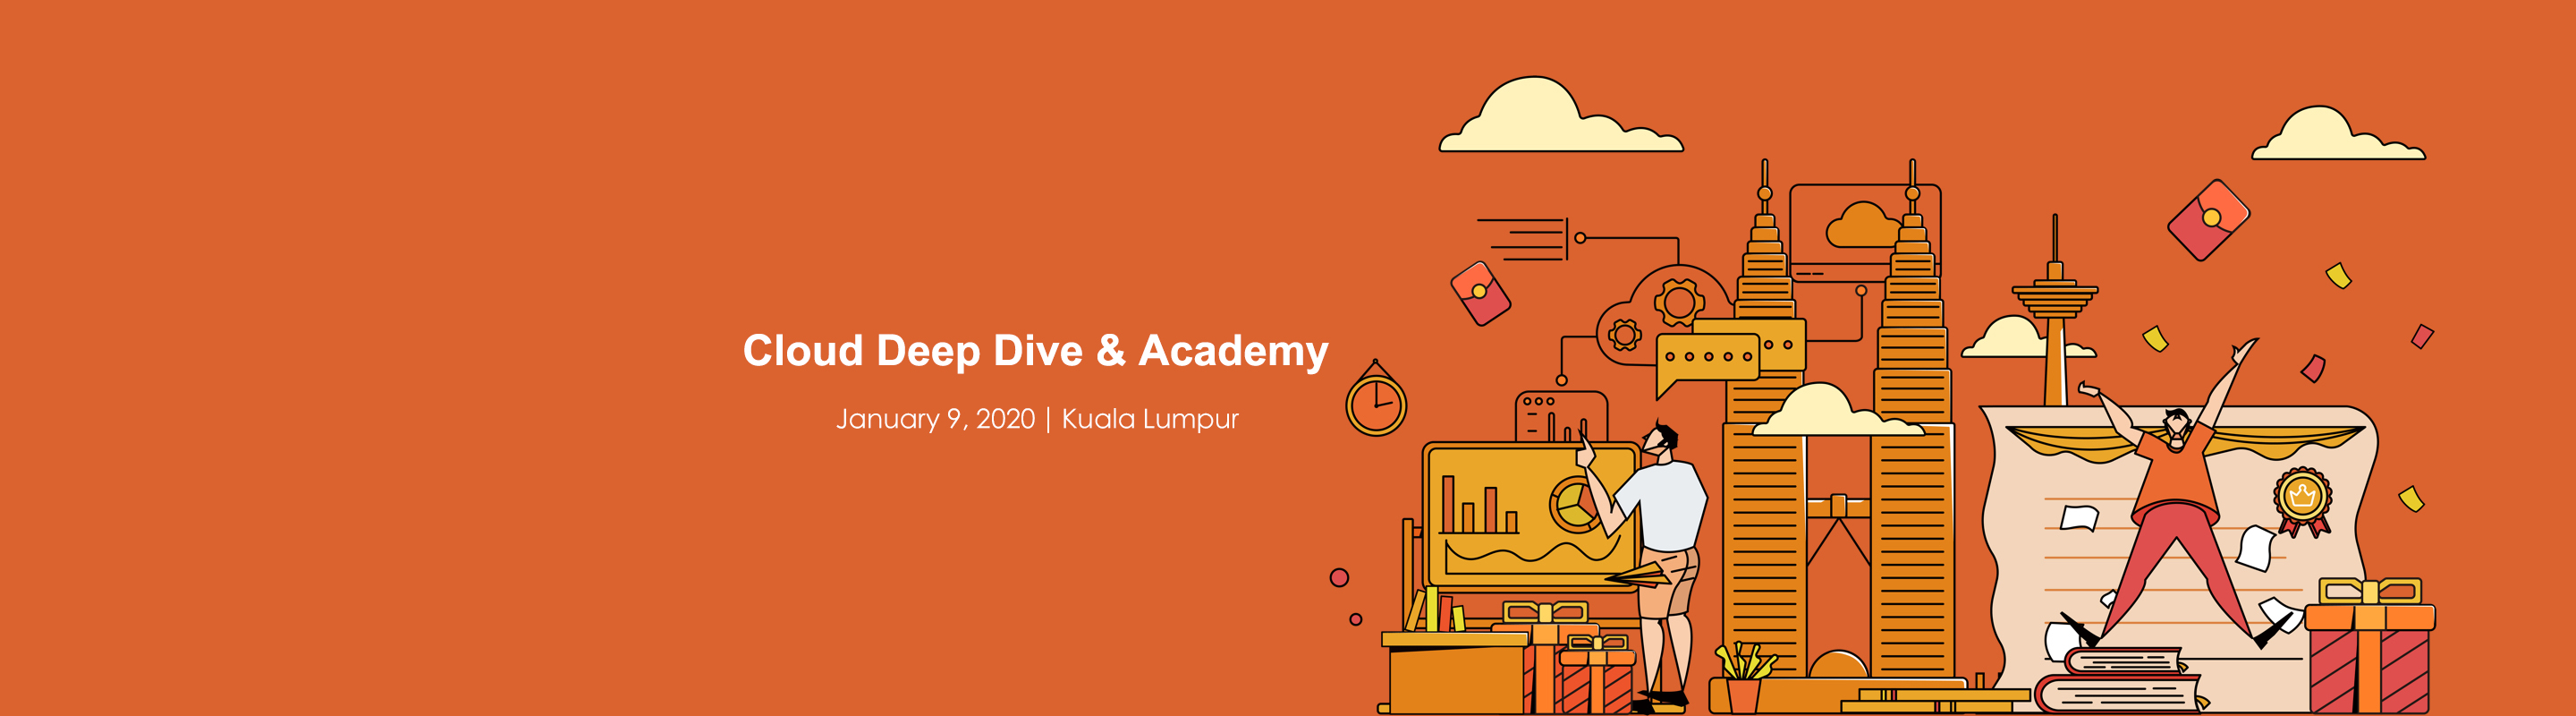 Cloud Deep Dive & Academy